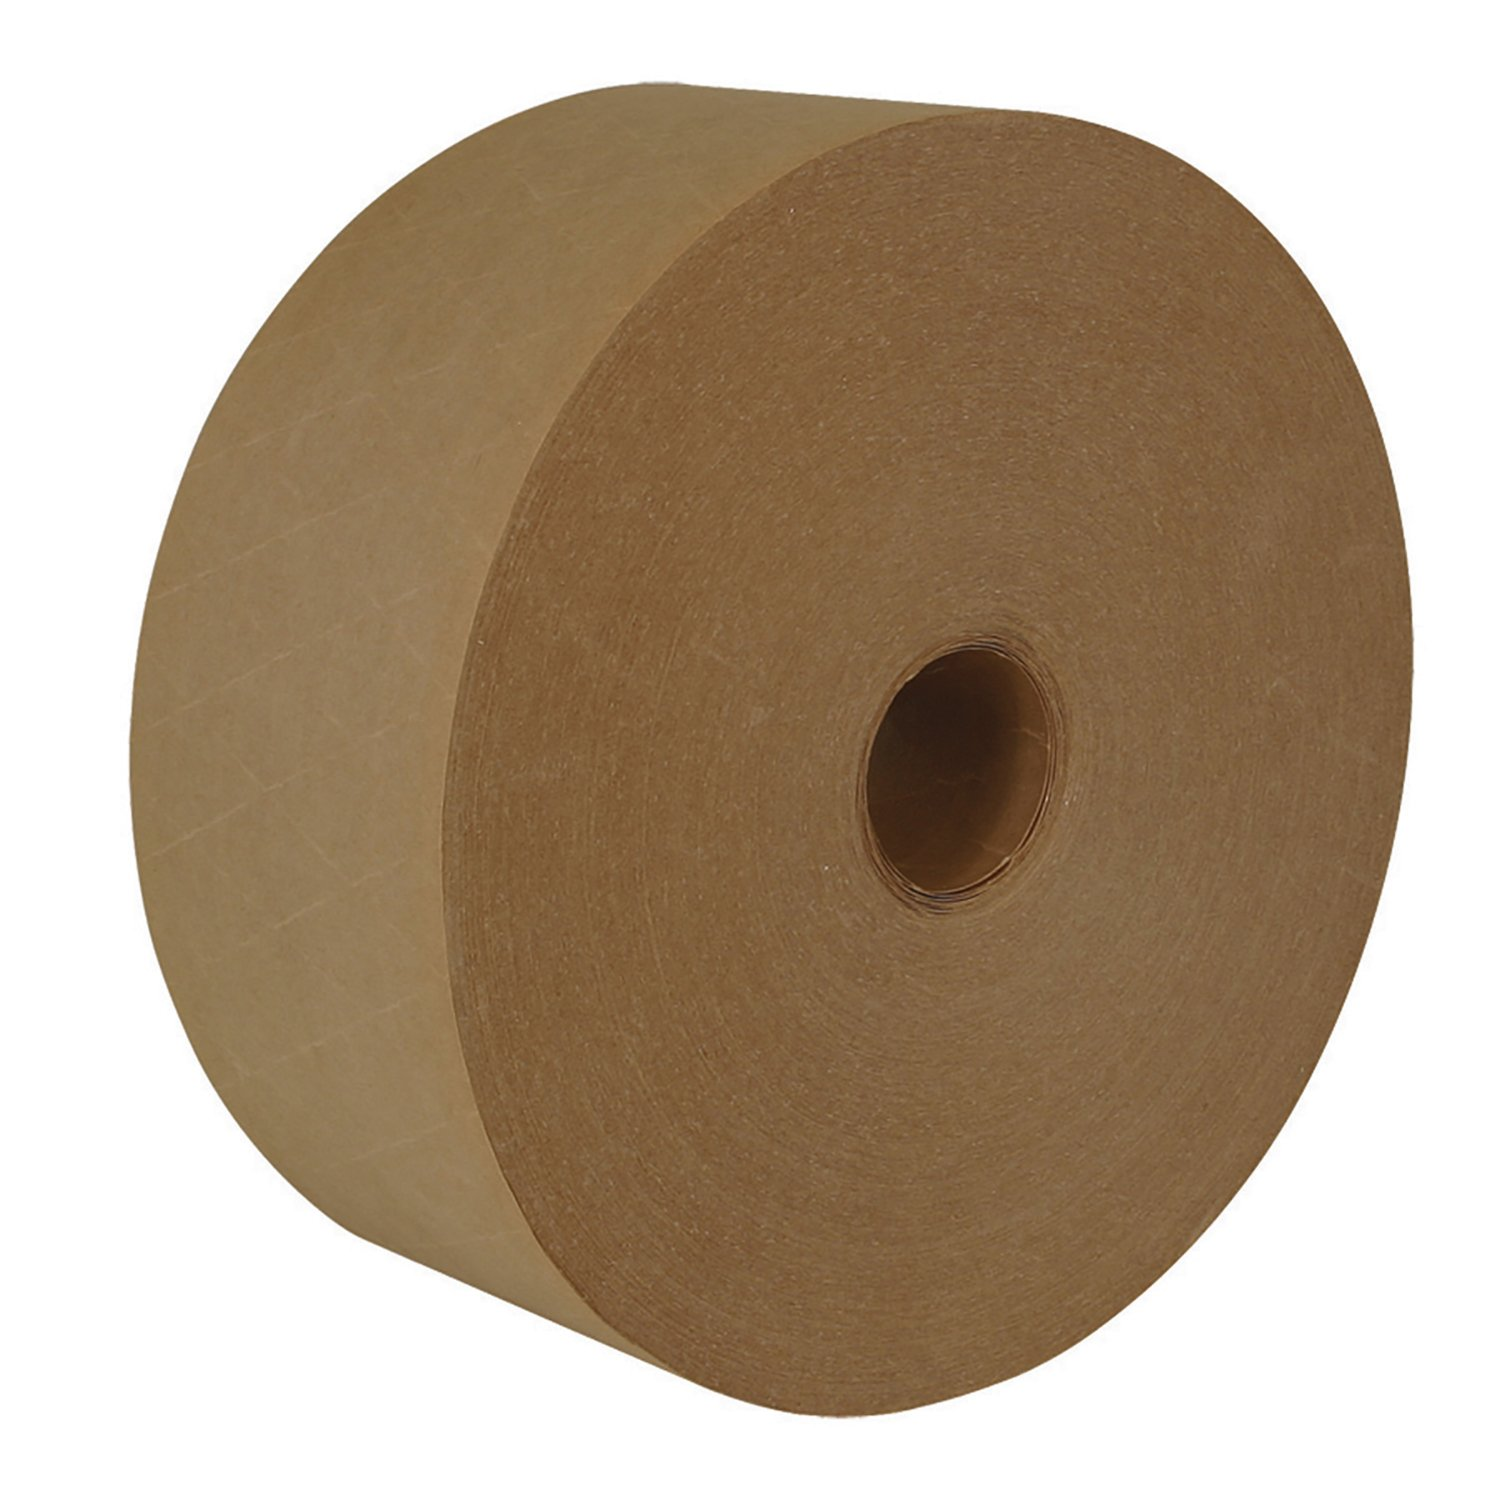 Intertape Polymer Group - Central 281 Grade K2664 All-Purpose Box Tape, Natural, 3' x 3400', Case of 2 Rolls 3 x 3400' Intertape Polymer Group Inc.